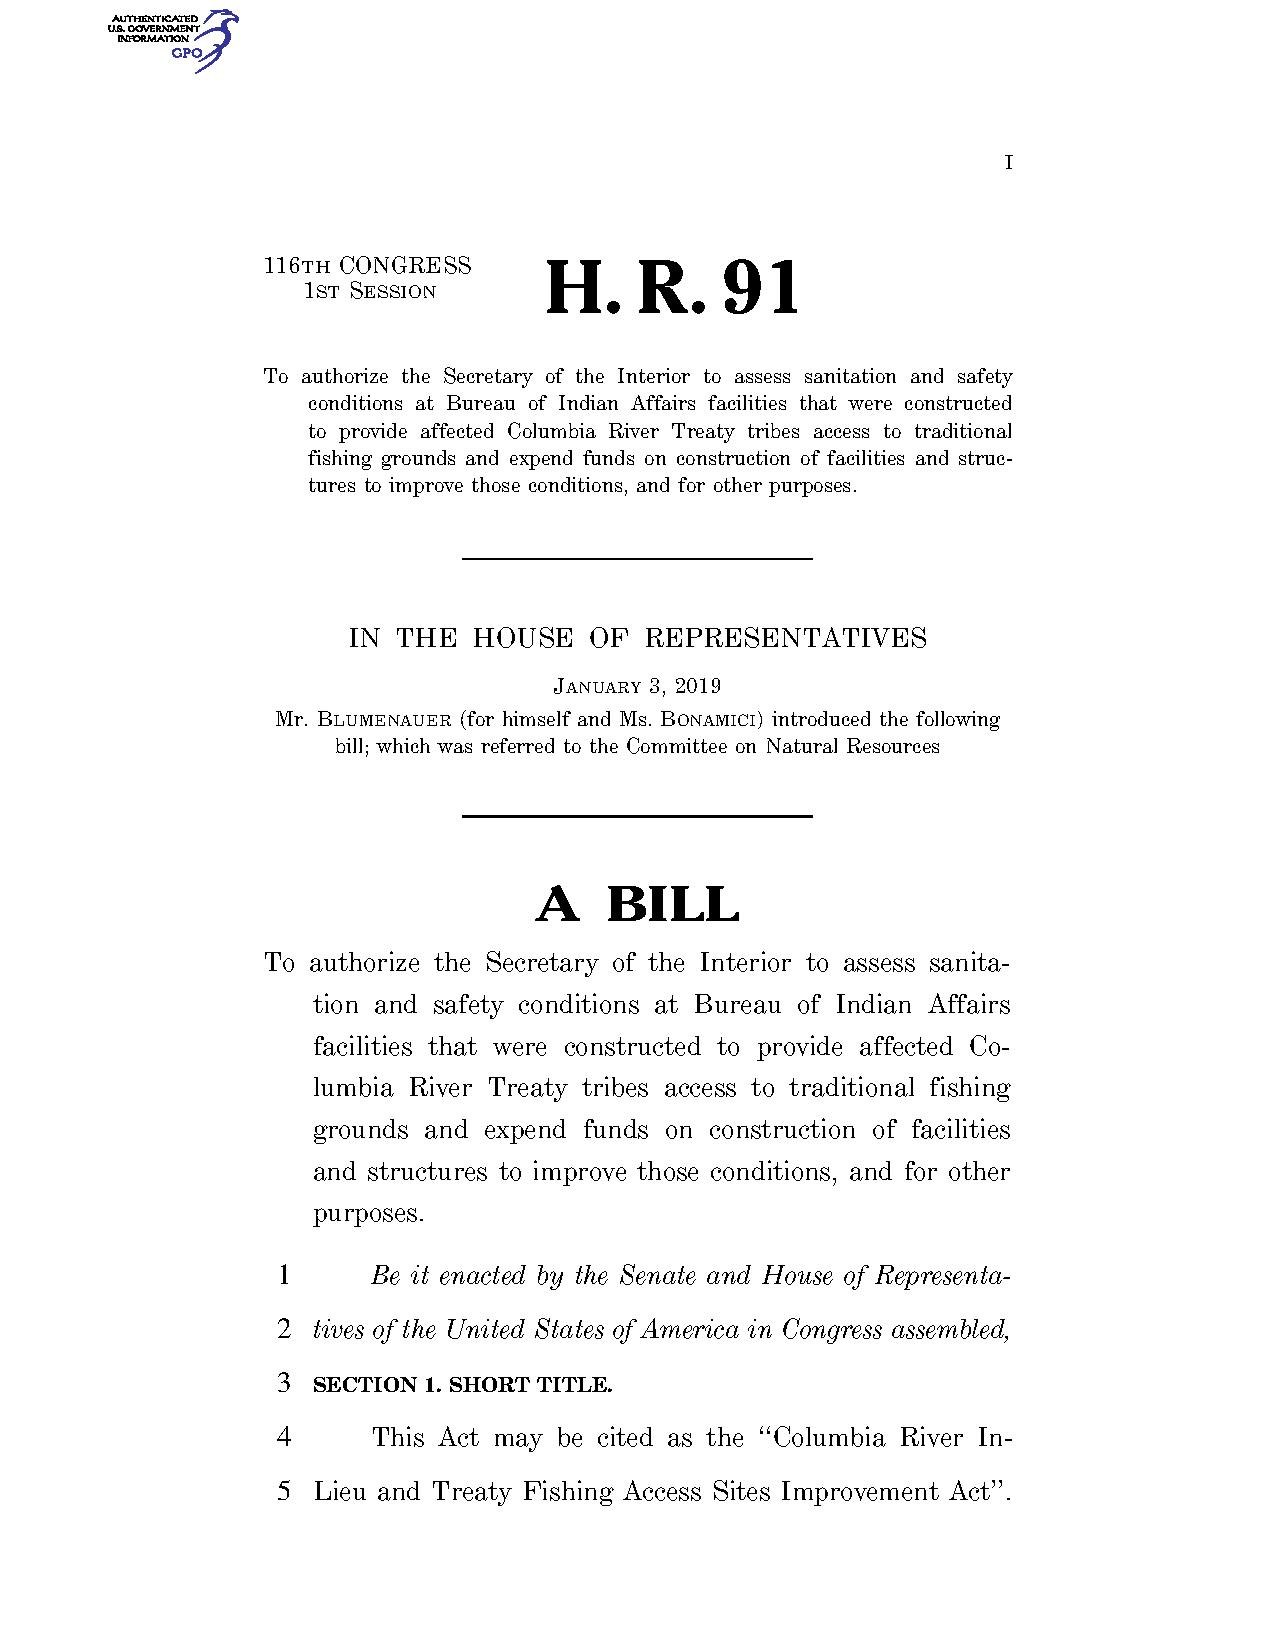 fa68c95af19 File 116th United States Congress H. R. 0000091 (1st session) - Columbia  River In-Lieu and Treaty Fishing Access Sites Improvement Act.pdf